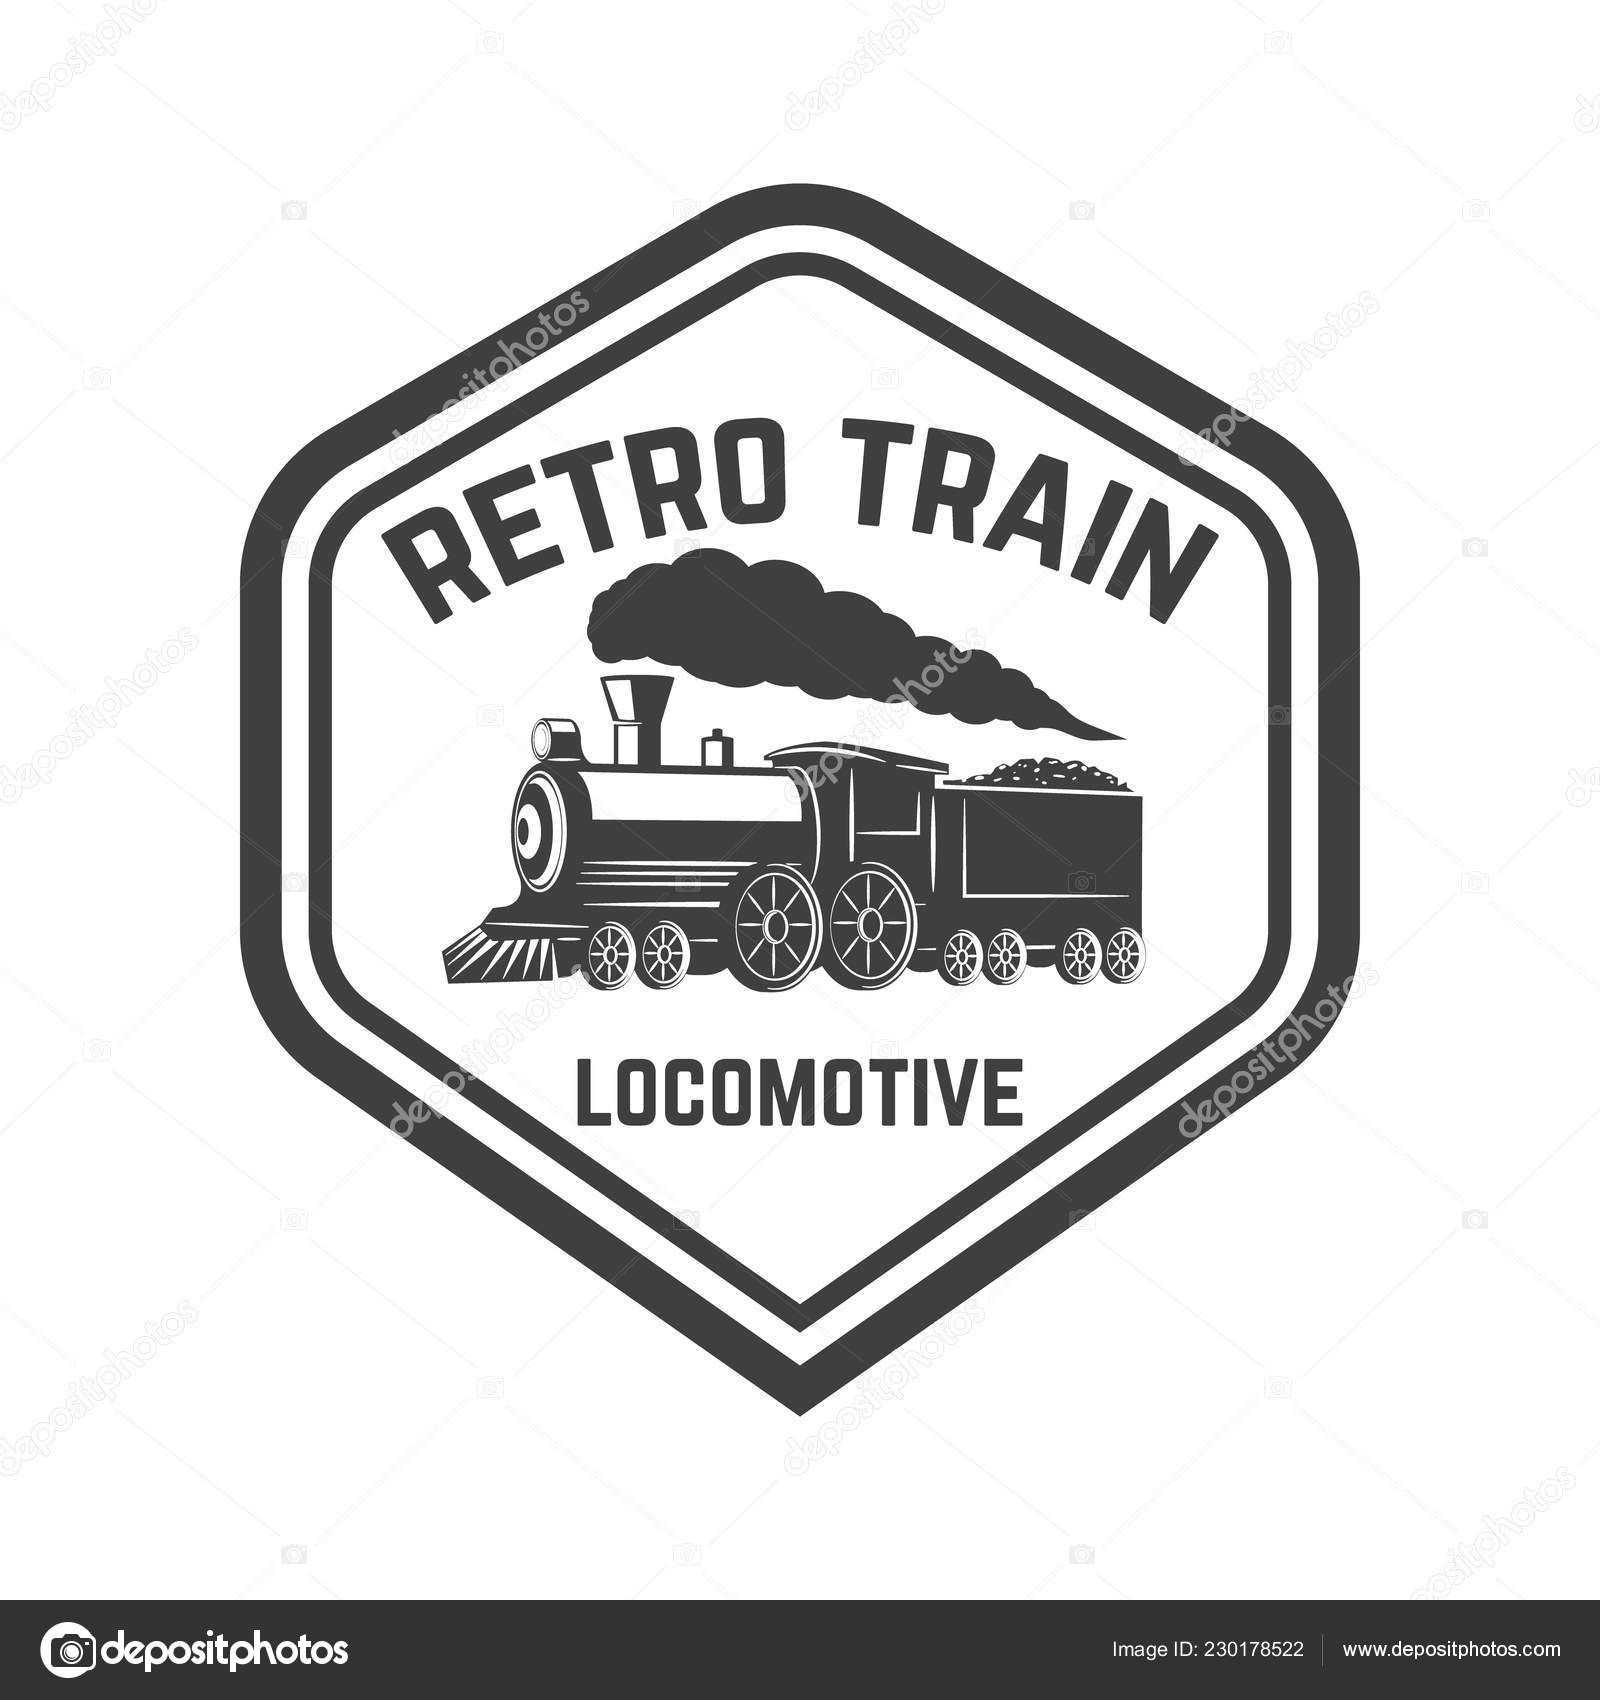 Emblem Template Retro Train Rail Road Locomotive Design Element Logo Stock Vector C Art L I Ua 230178522